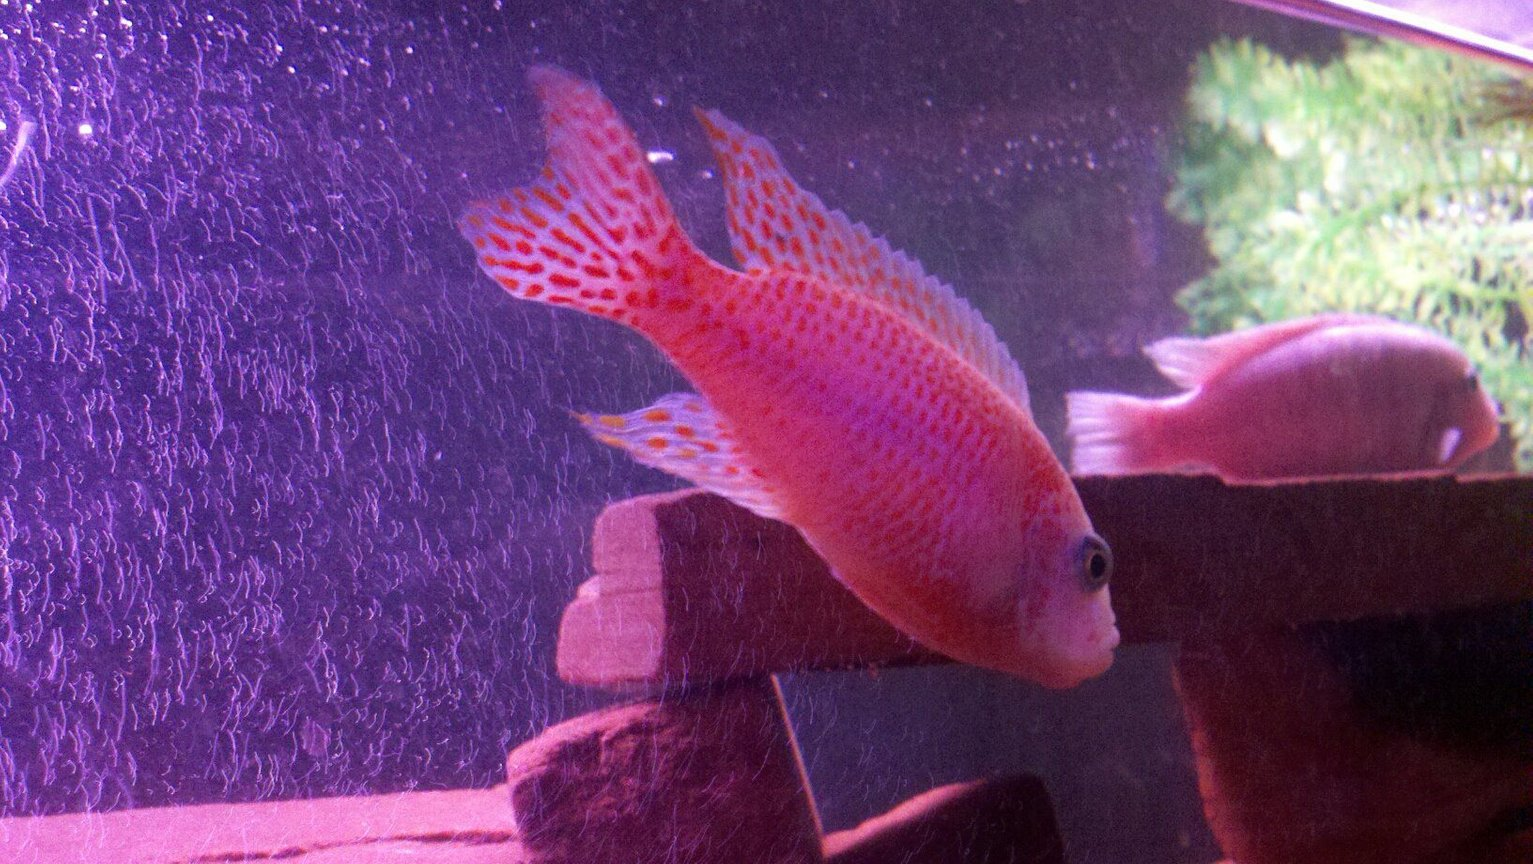 freshwater fish - aulonocara sp. - strawberry peacock cichlid stocking in 100 gallons tank - my strawberry peacock her hame is pinkie,